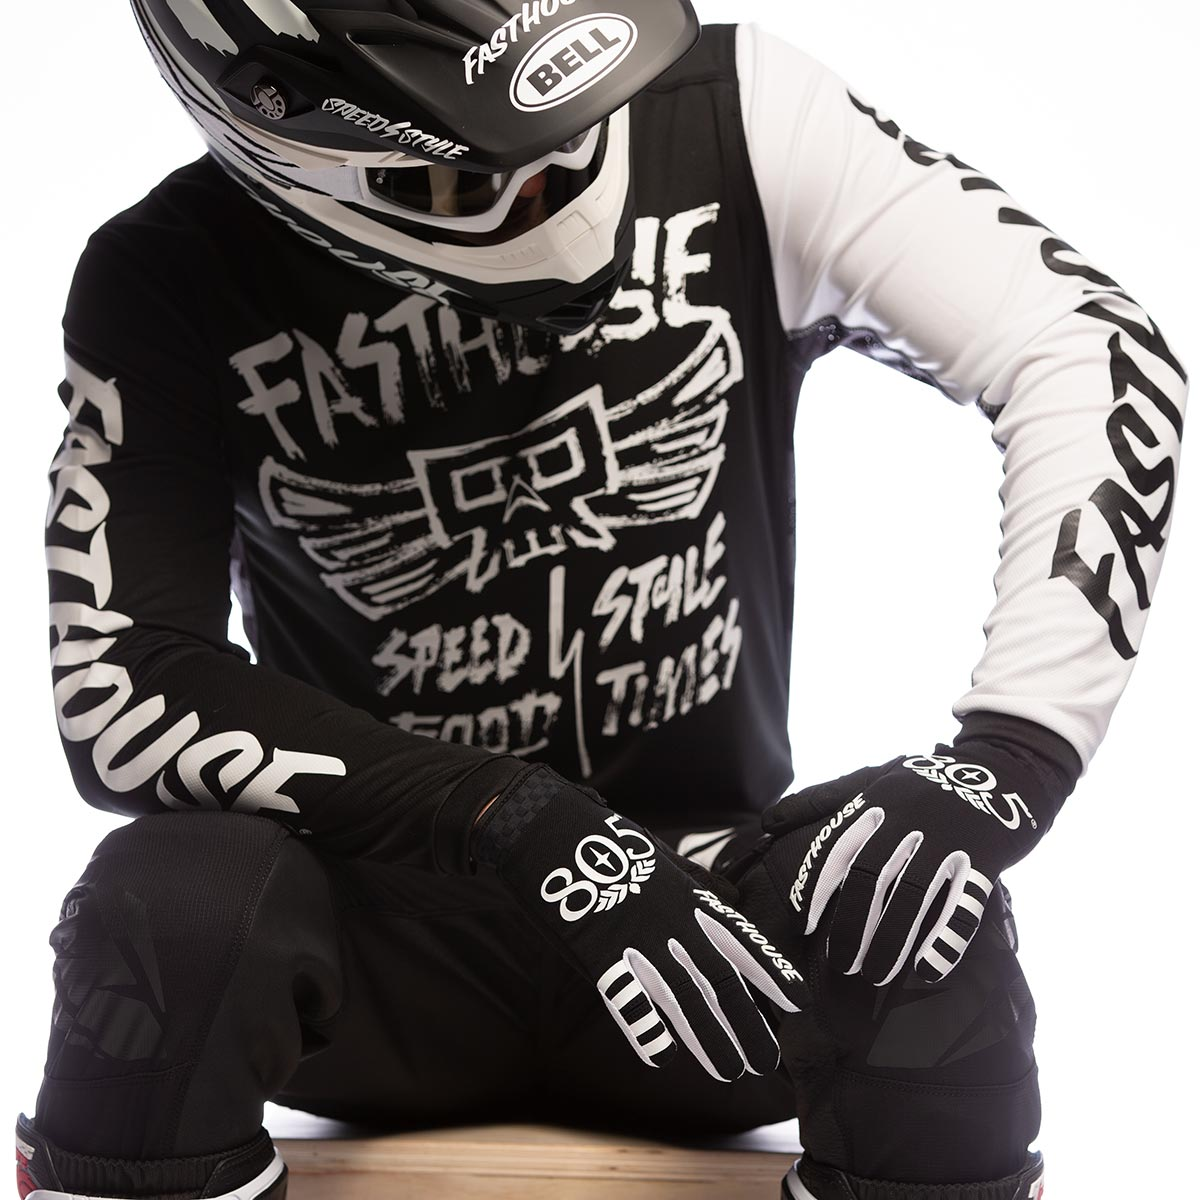 Tribe Jersey - Black; 805 Speed Style Gloves, Raven Pants